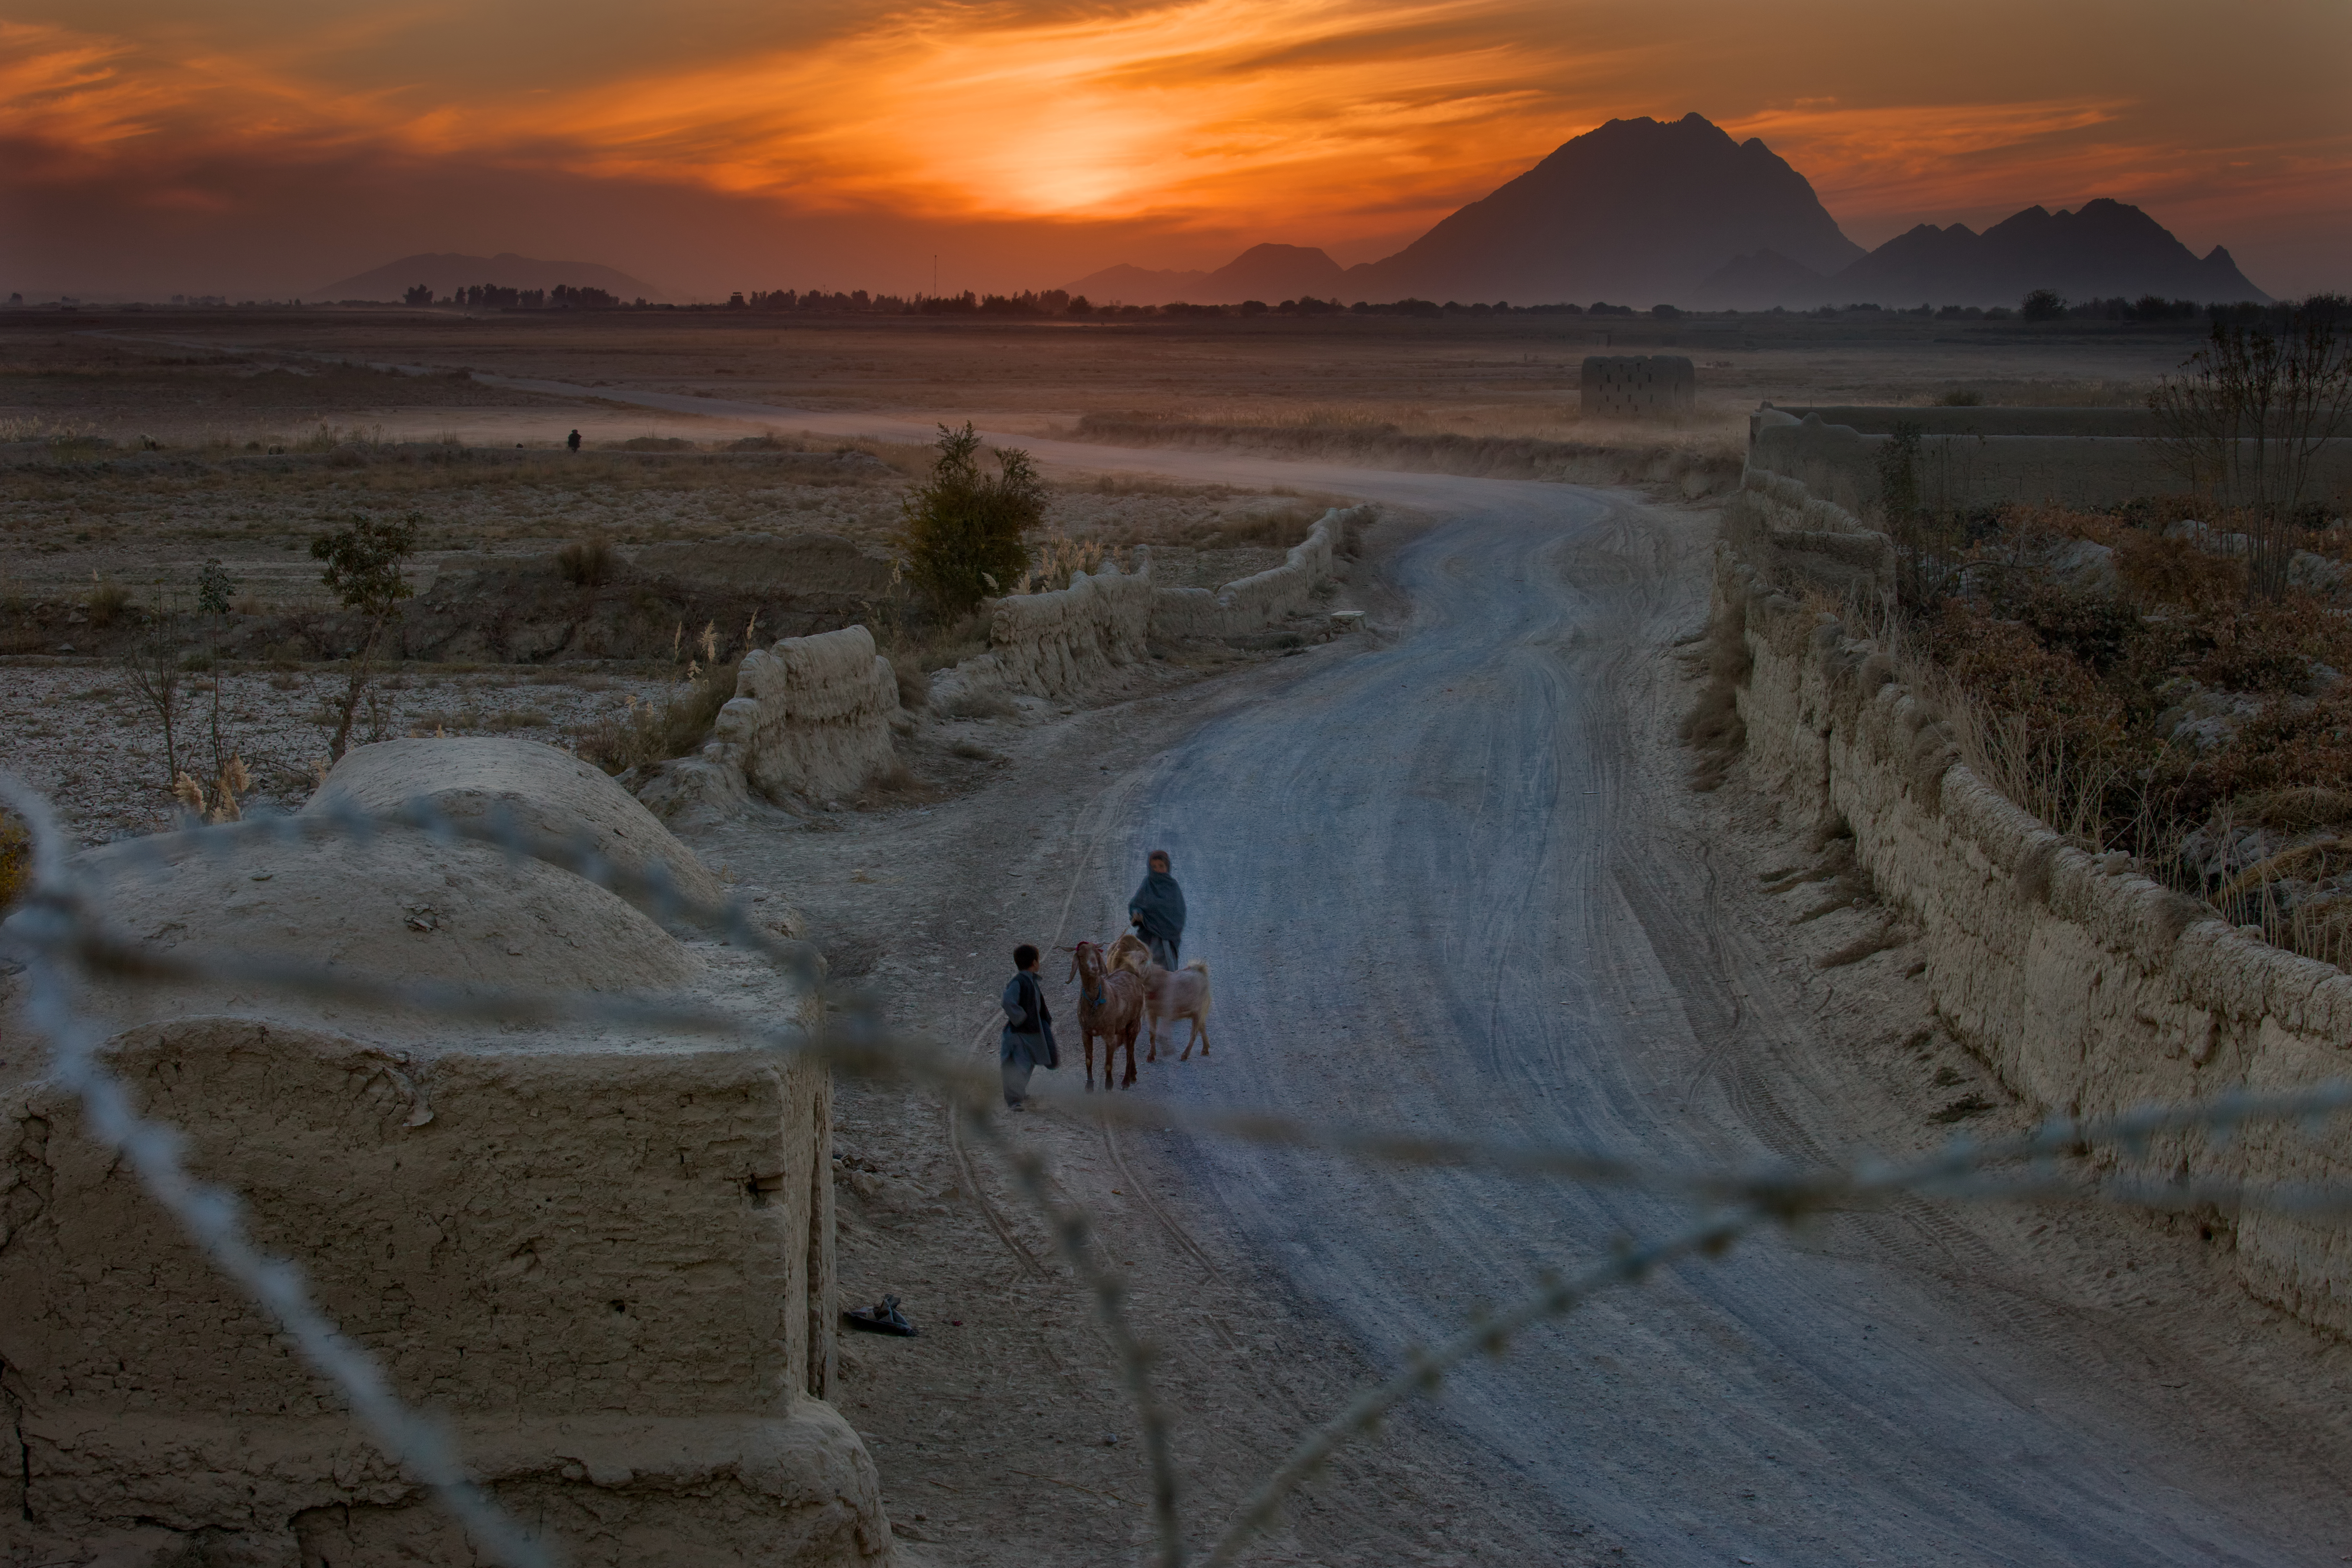 Afghan youngsters head home near Kandahar, just as U.S. troops will be doing.